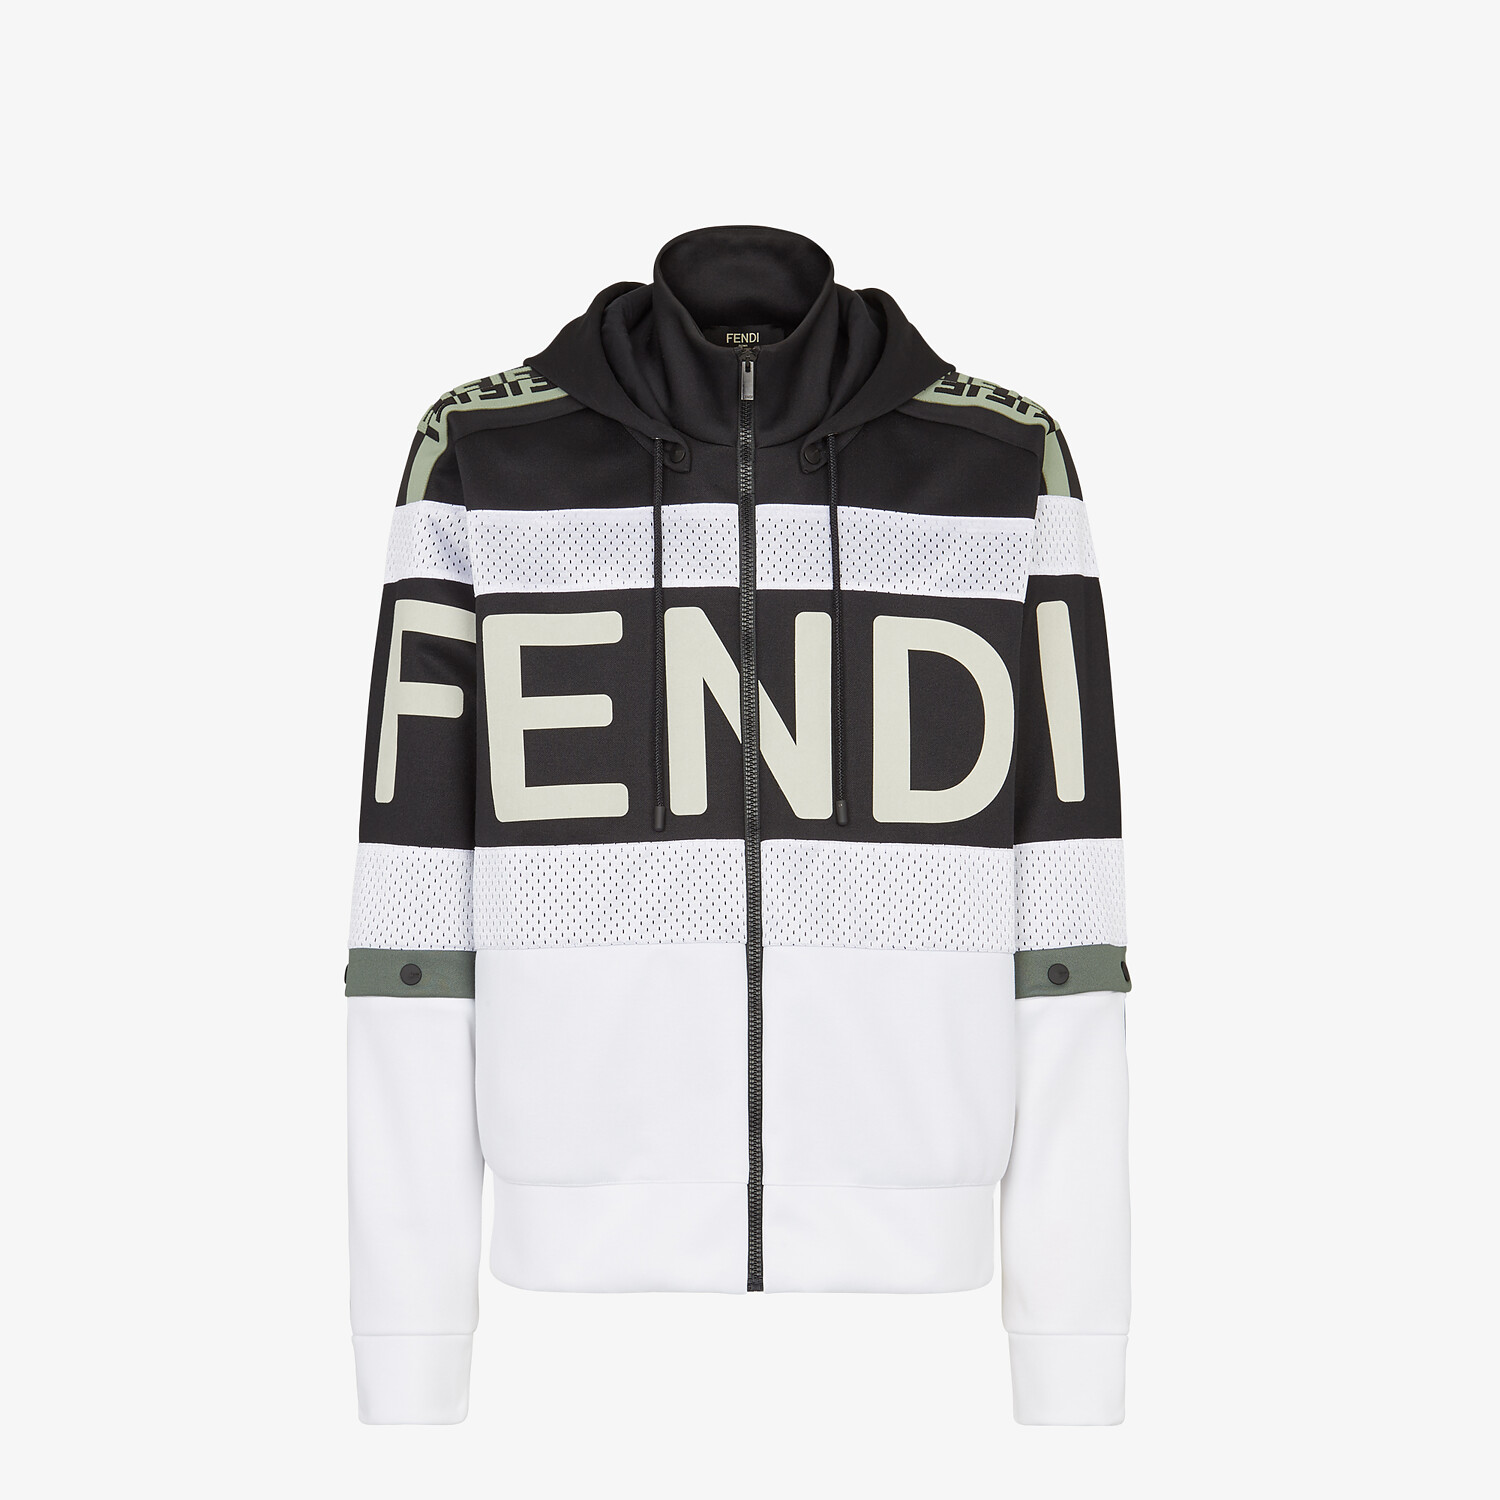 FENDI SWEATSHIRT - Multicolor jersey sweatshirt - view 1 detail